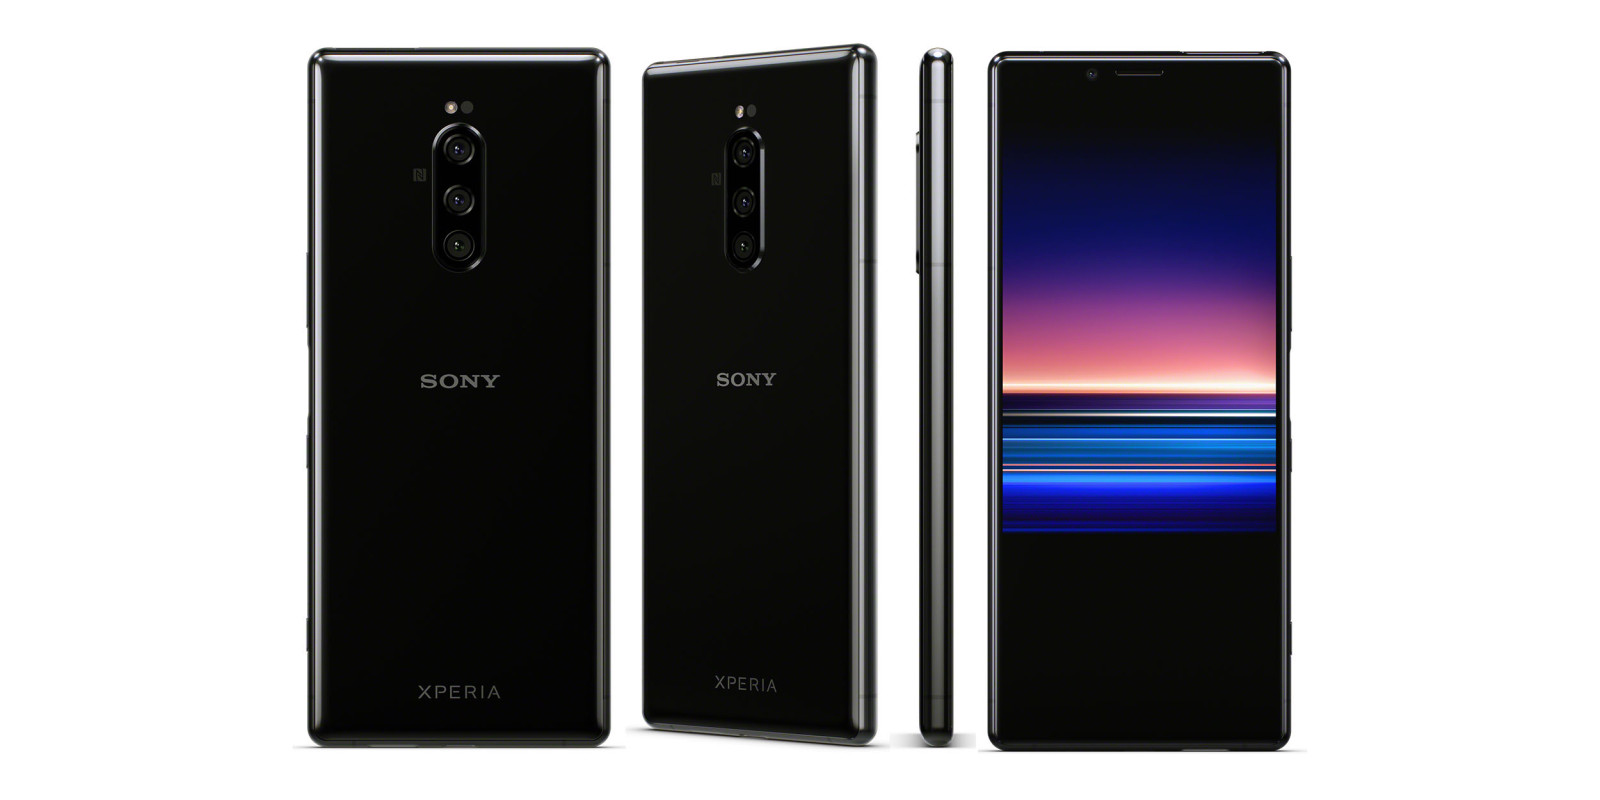 Sony Starts New With Its Xperia 1 Flagship With 21:9 Cinematic 4k Oled Screen & Triple Cameras